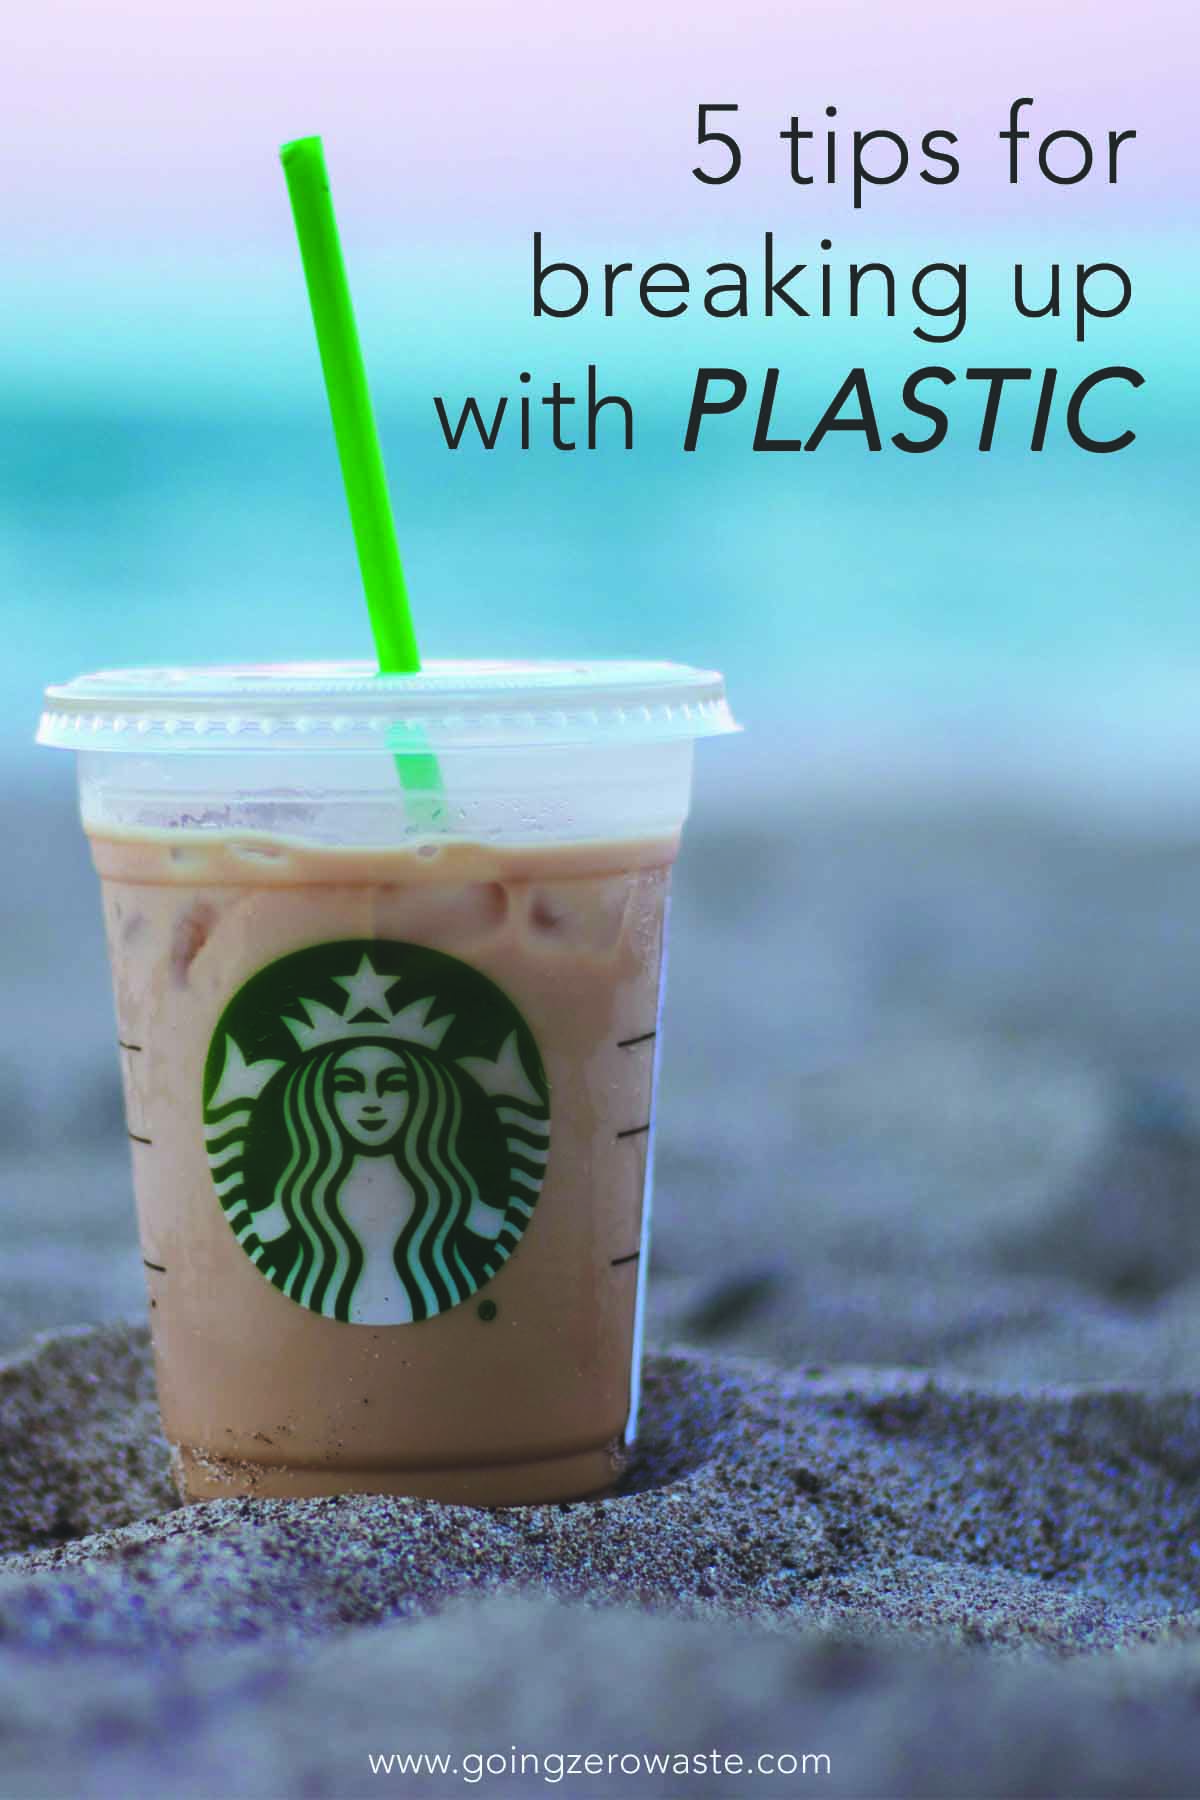 5 tips for breaking up with plastic from www.goingzerowaste.com #zerowaste #plasticfree #ditchplastic #goingzerowaste